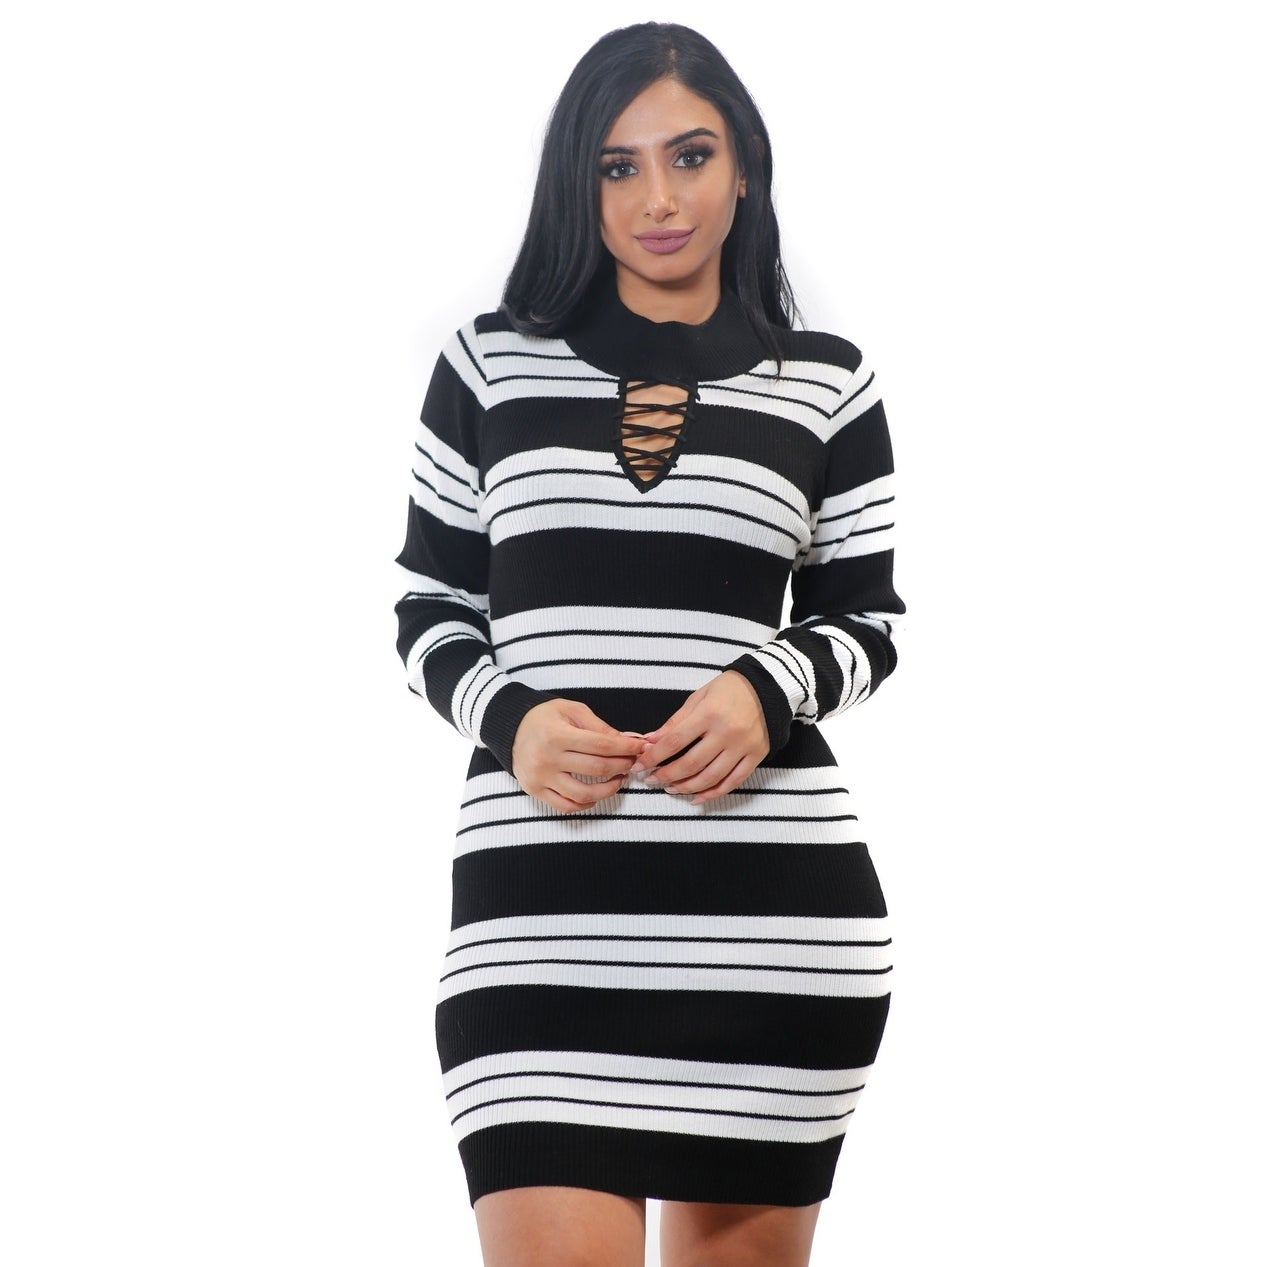 fc41ff8b07 Shop Special One Ladies Bodycon Stripes Lace up Rib Sweater Dress - Free  Shipping On Orders Over  45 - Overstock - 17762235